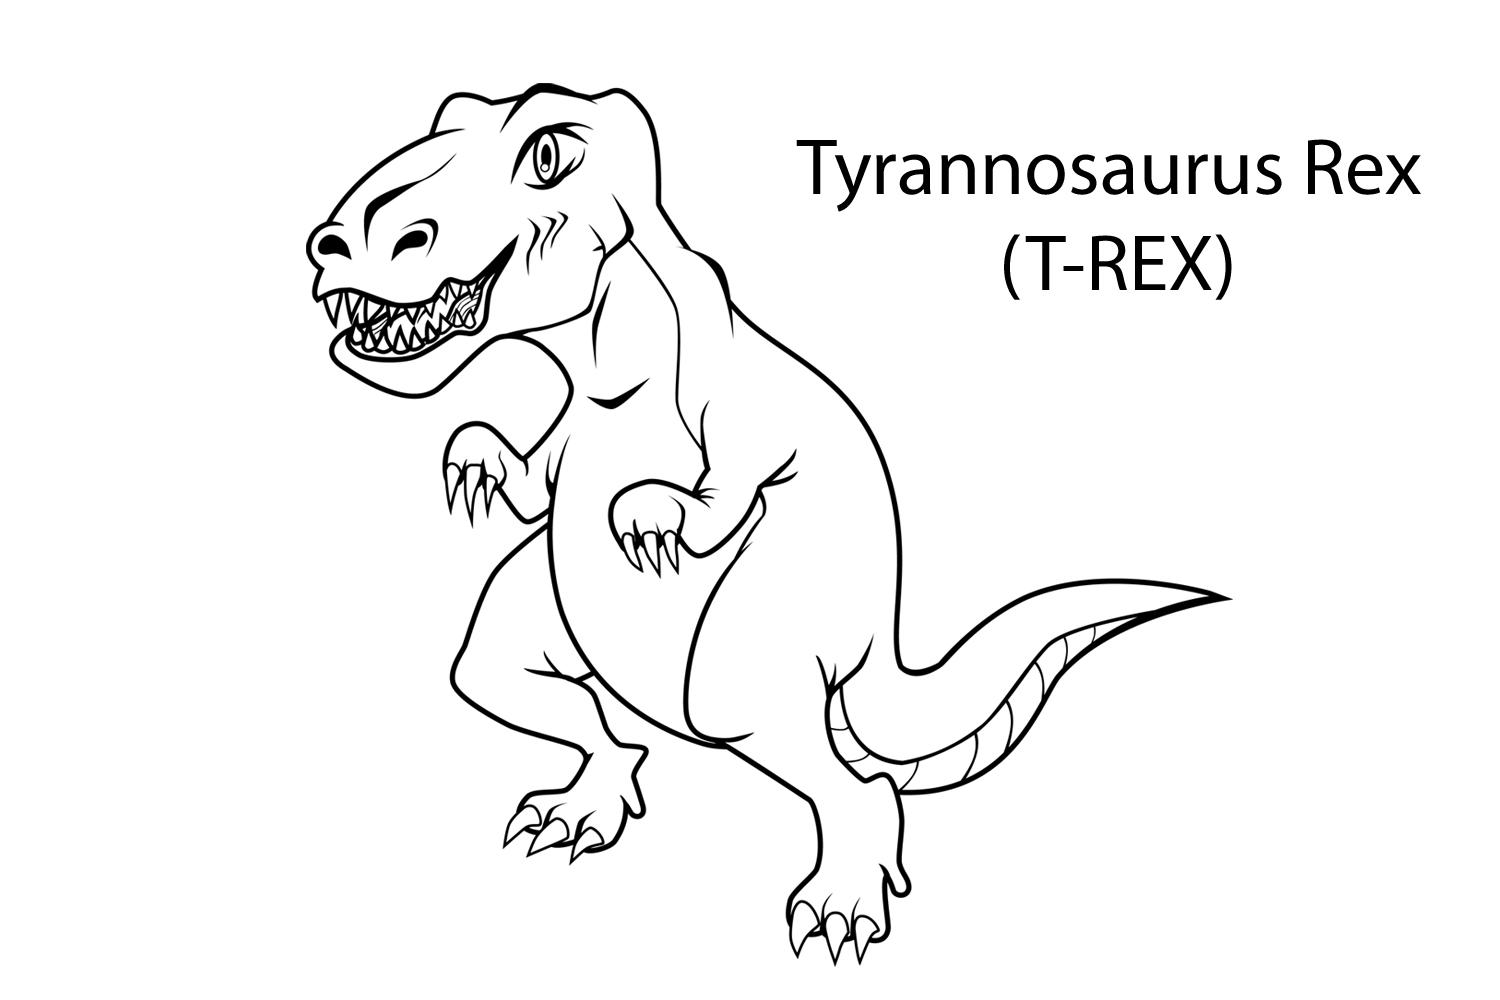 Pre k dinosaur coloring pages - Childrens Dinosaur Coloring Pages Dinosaur Coloring Page 9